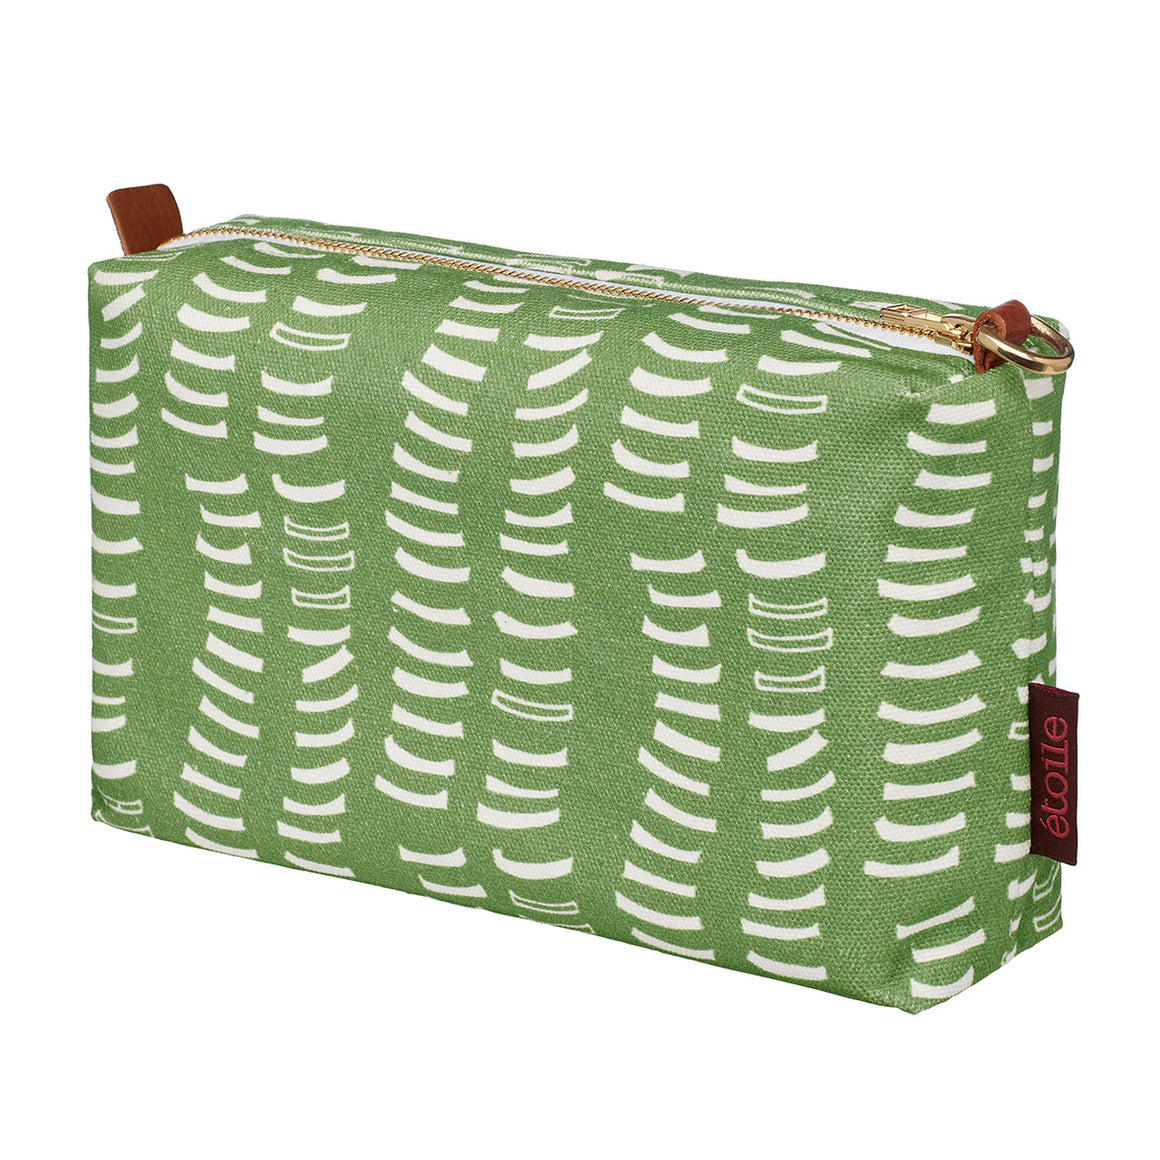 Avocado pale green canvas cotton toiletry or wash bag water resistant travel cosmetic ships from Canada (USA)